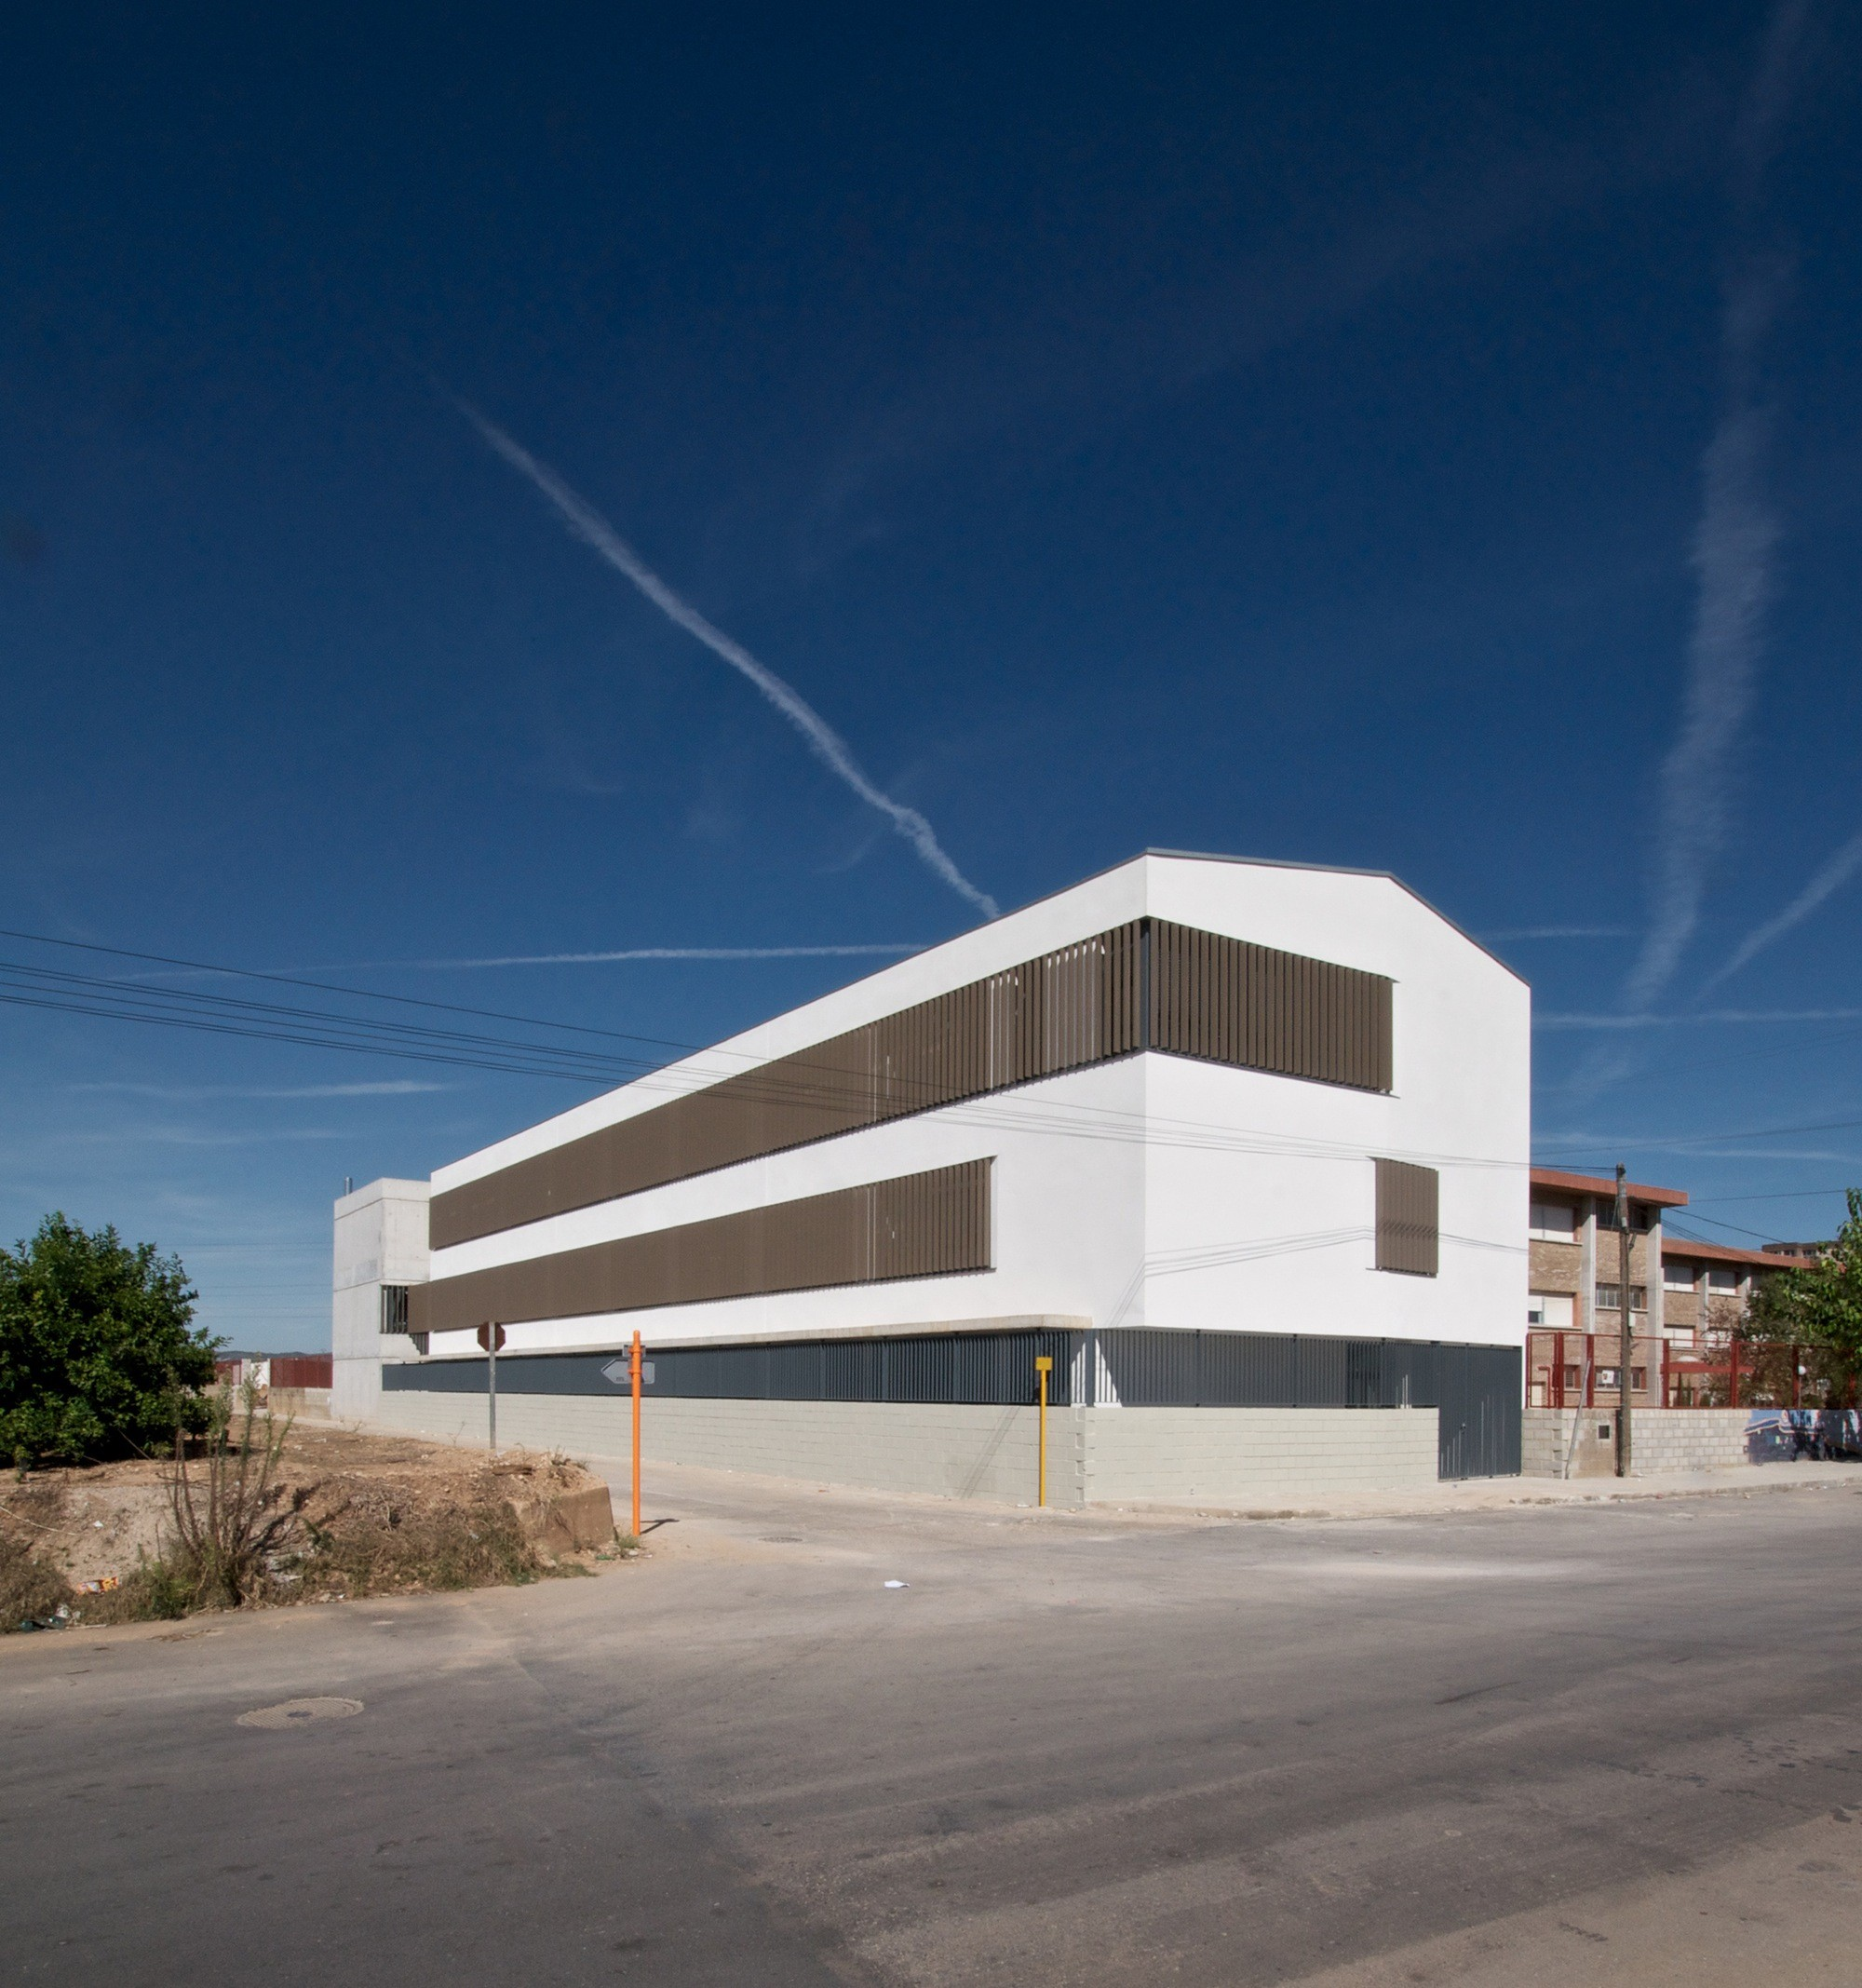 9th October Institute in Carlet / García Floquet Arquitectos, Courtesy of García Floquet Arquitectos